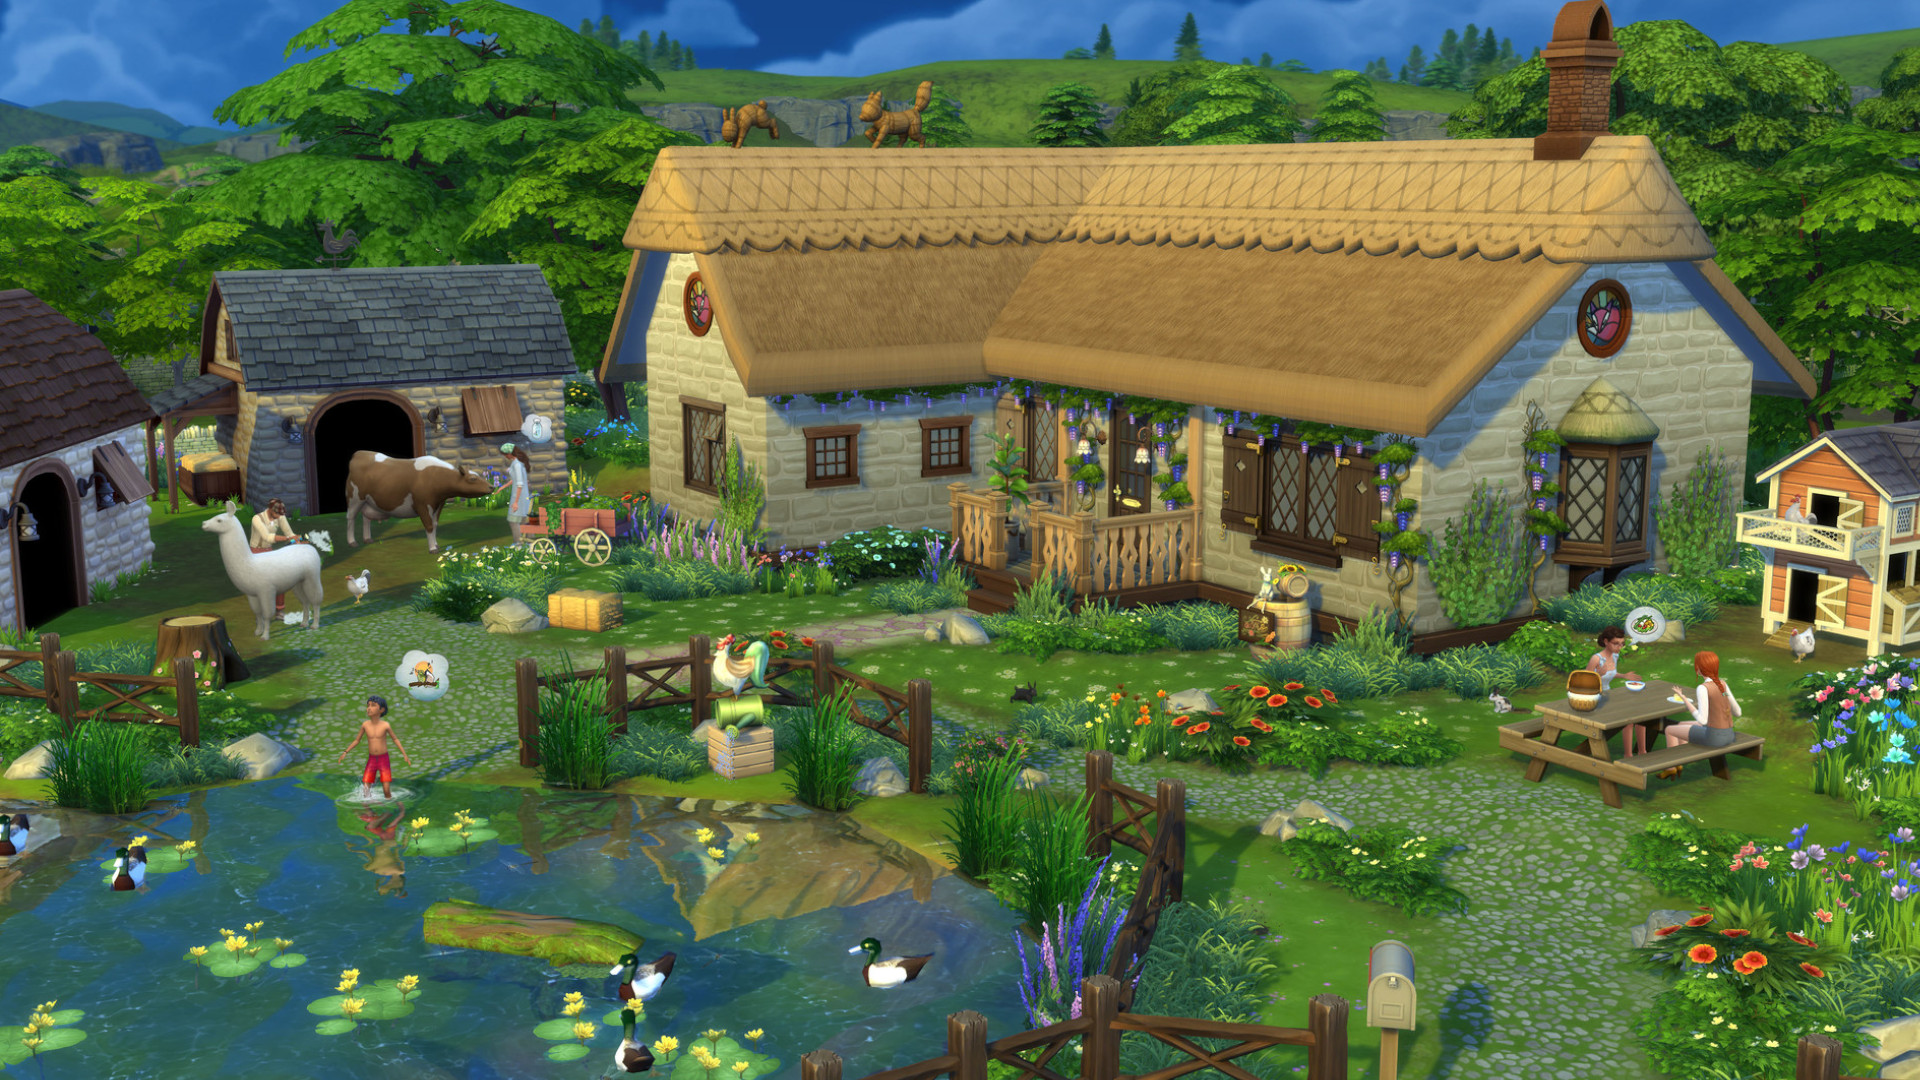 The Sims 4 finally has a pond tool (and alligators)